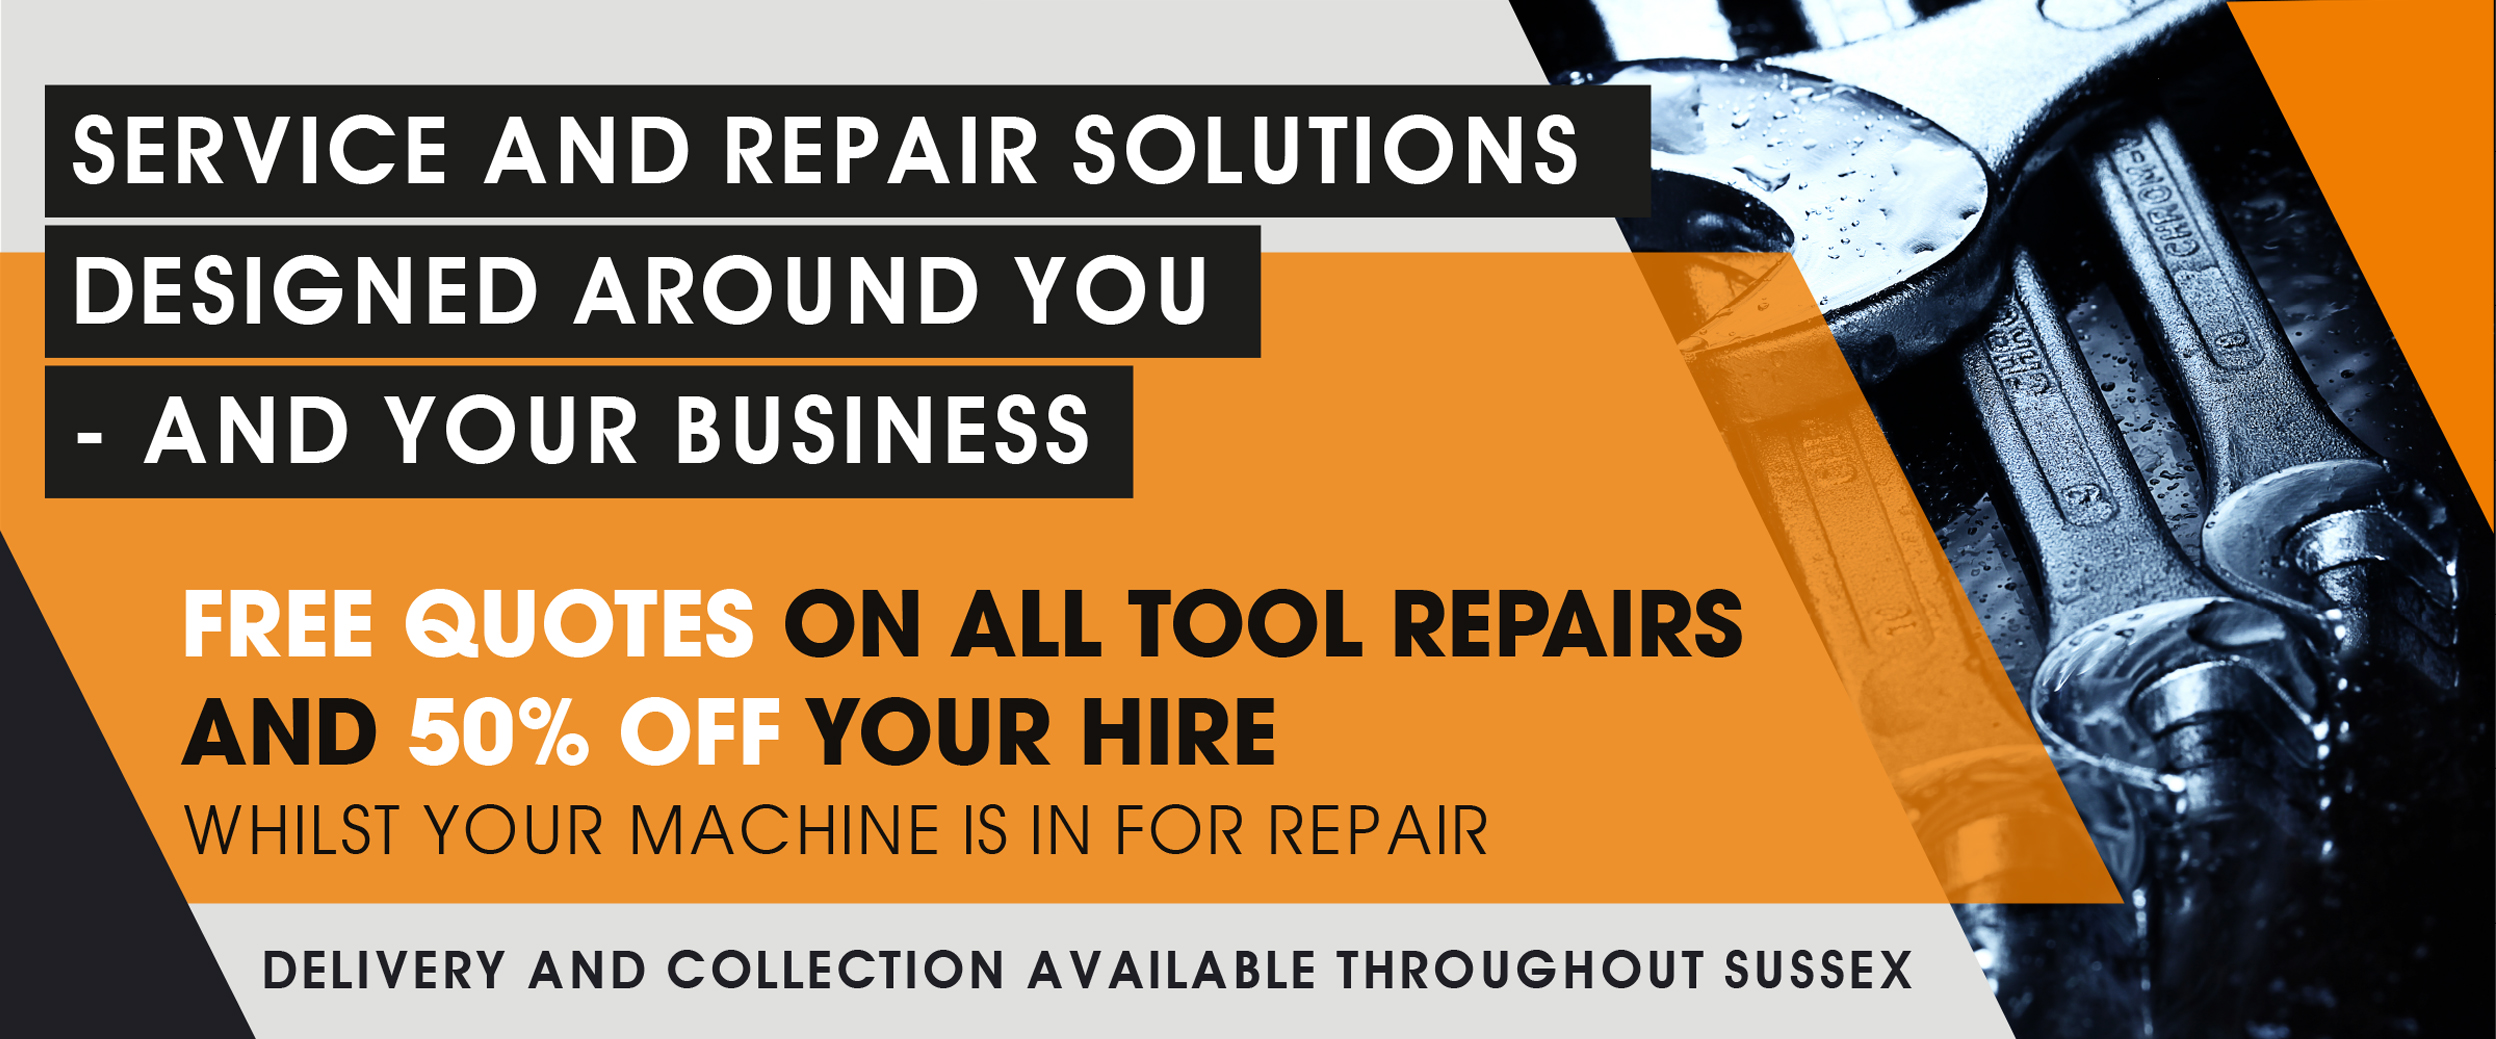 Repair solutions for you and your business - 50% off hire whilst you wait and free quotes